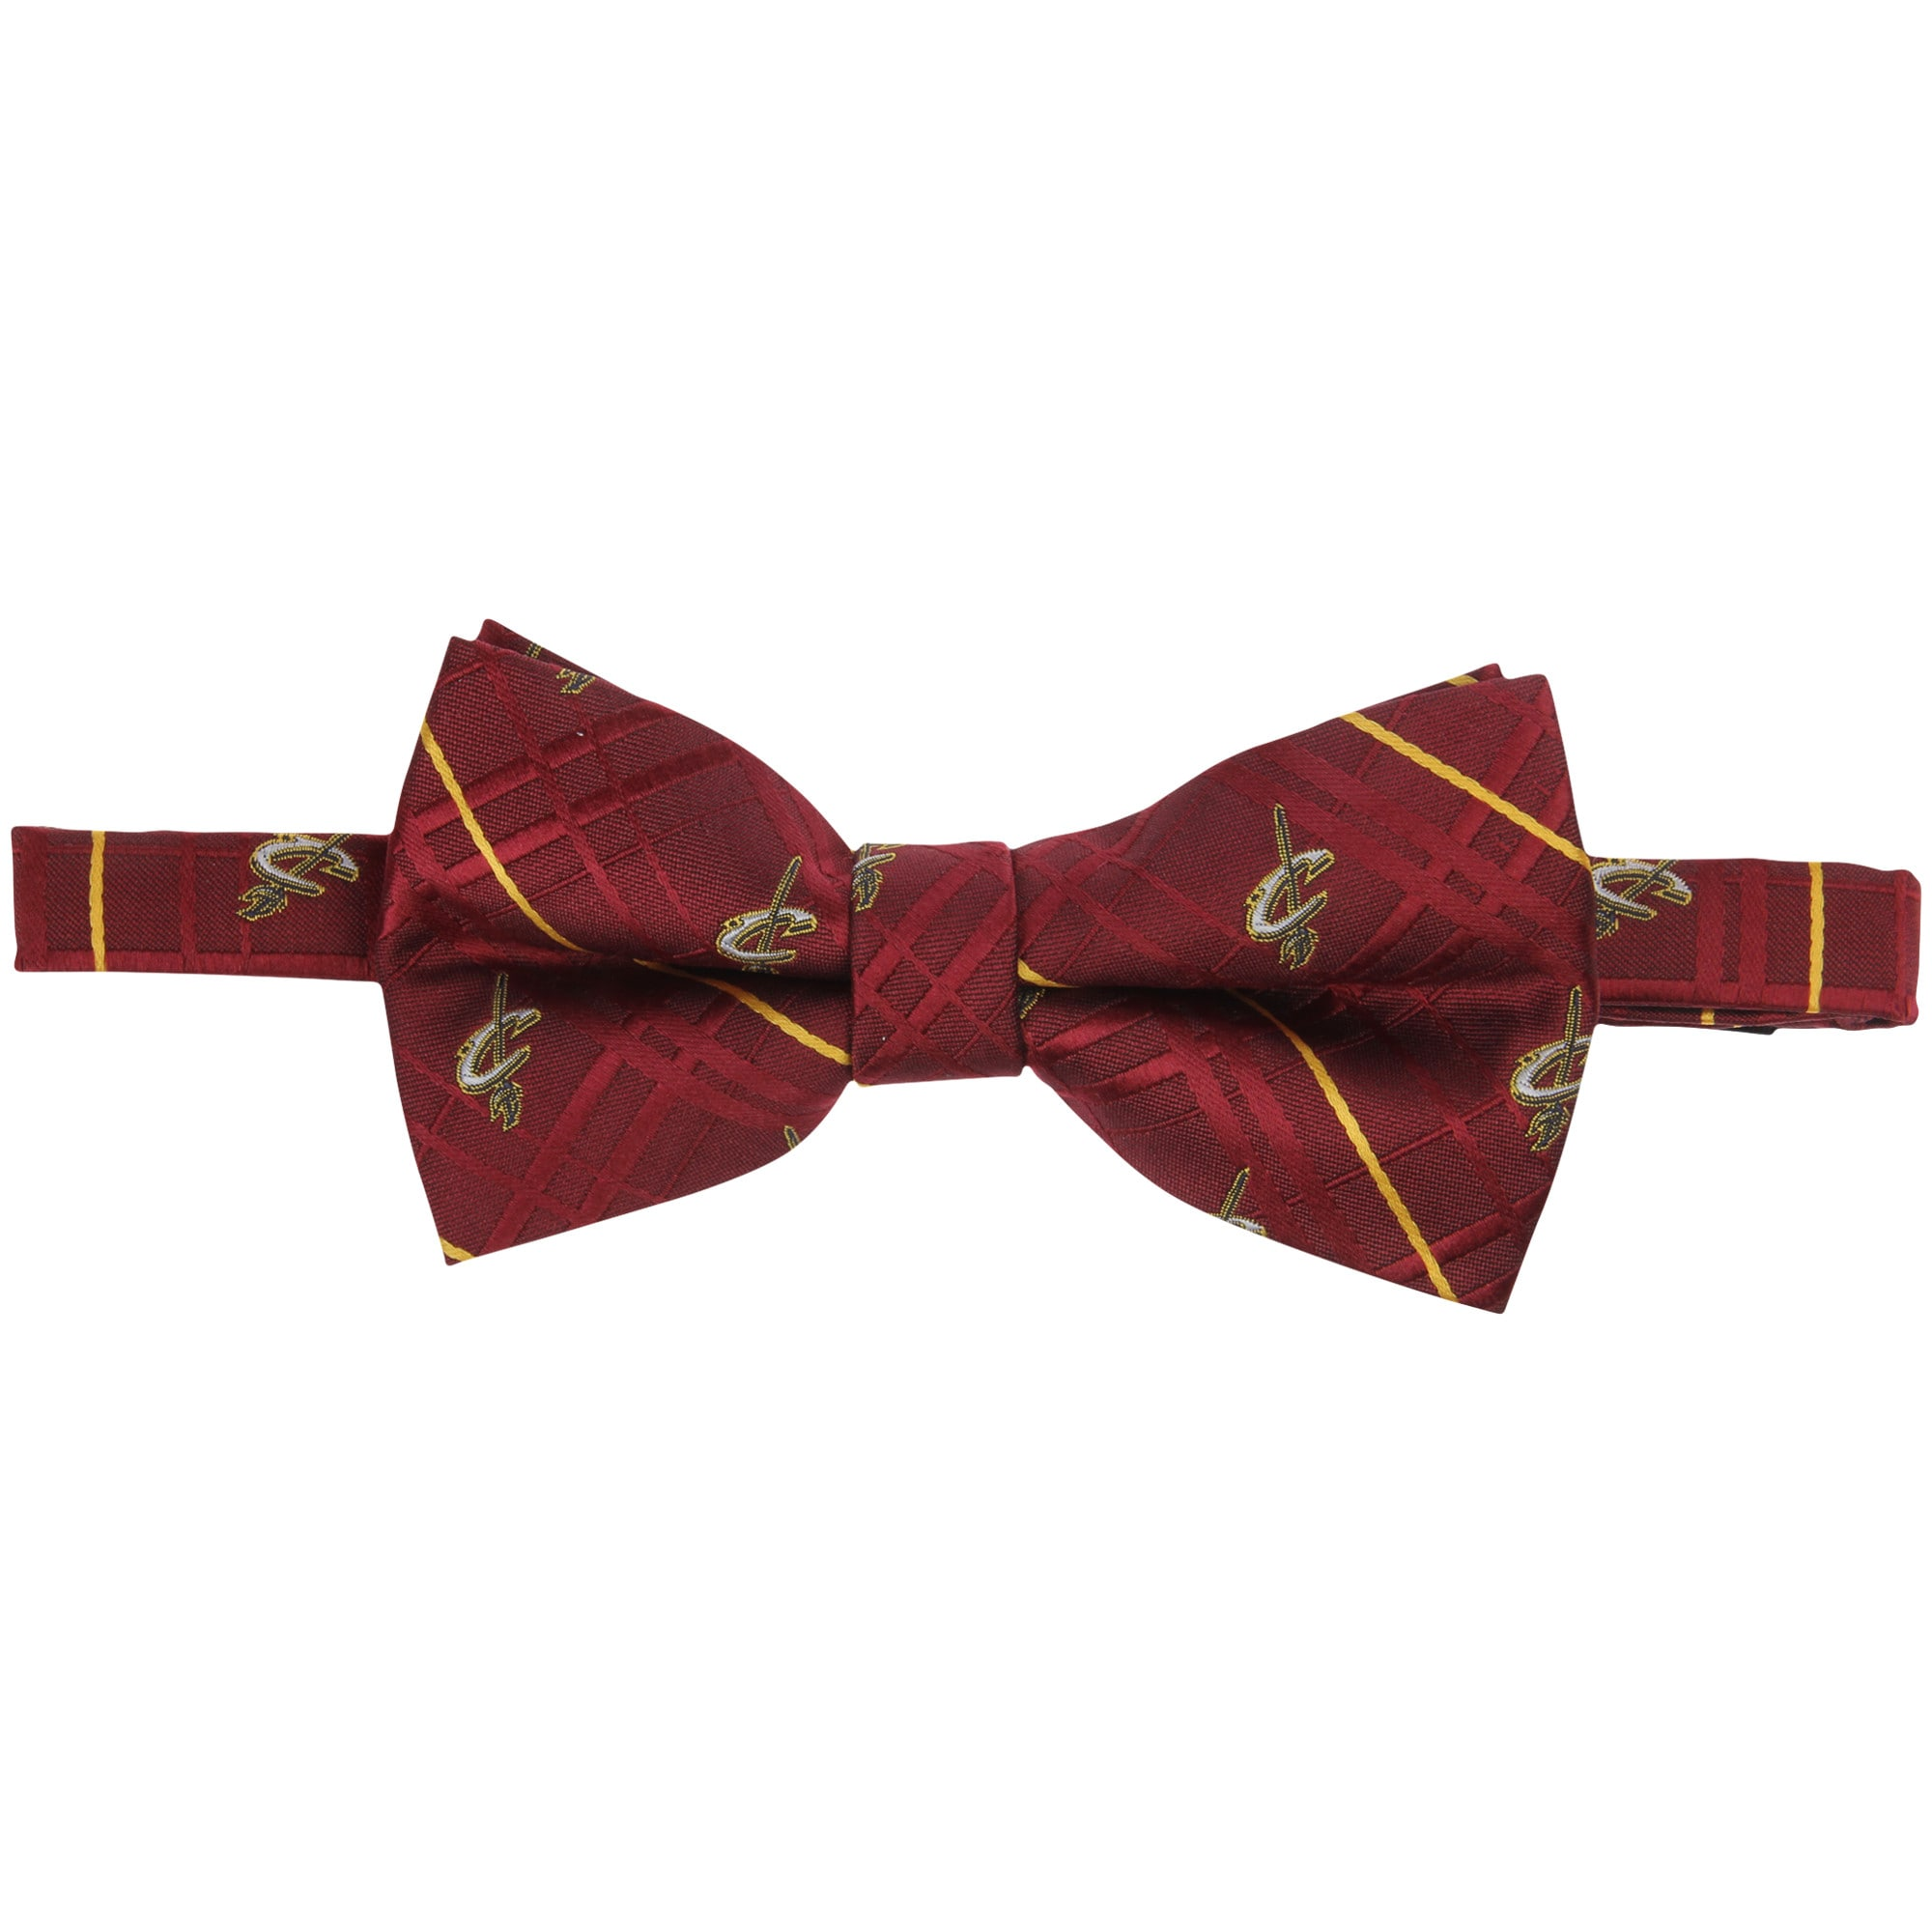 Cleveland Cavaliers Oxford Bow Tie - Wine